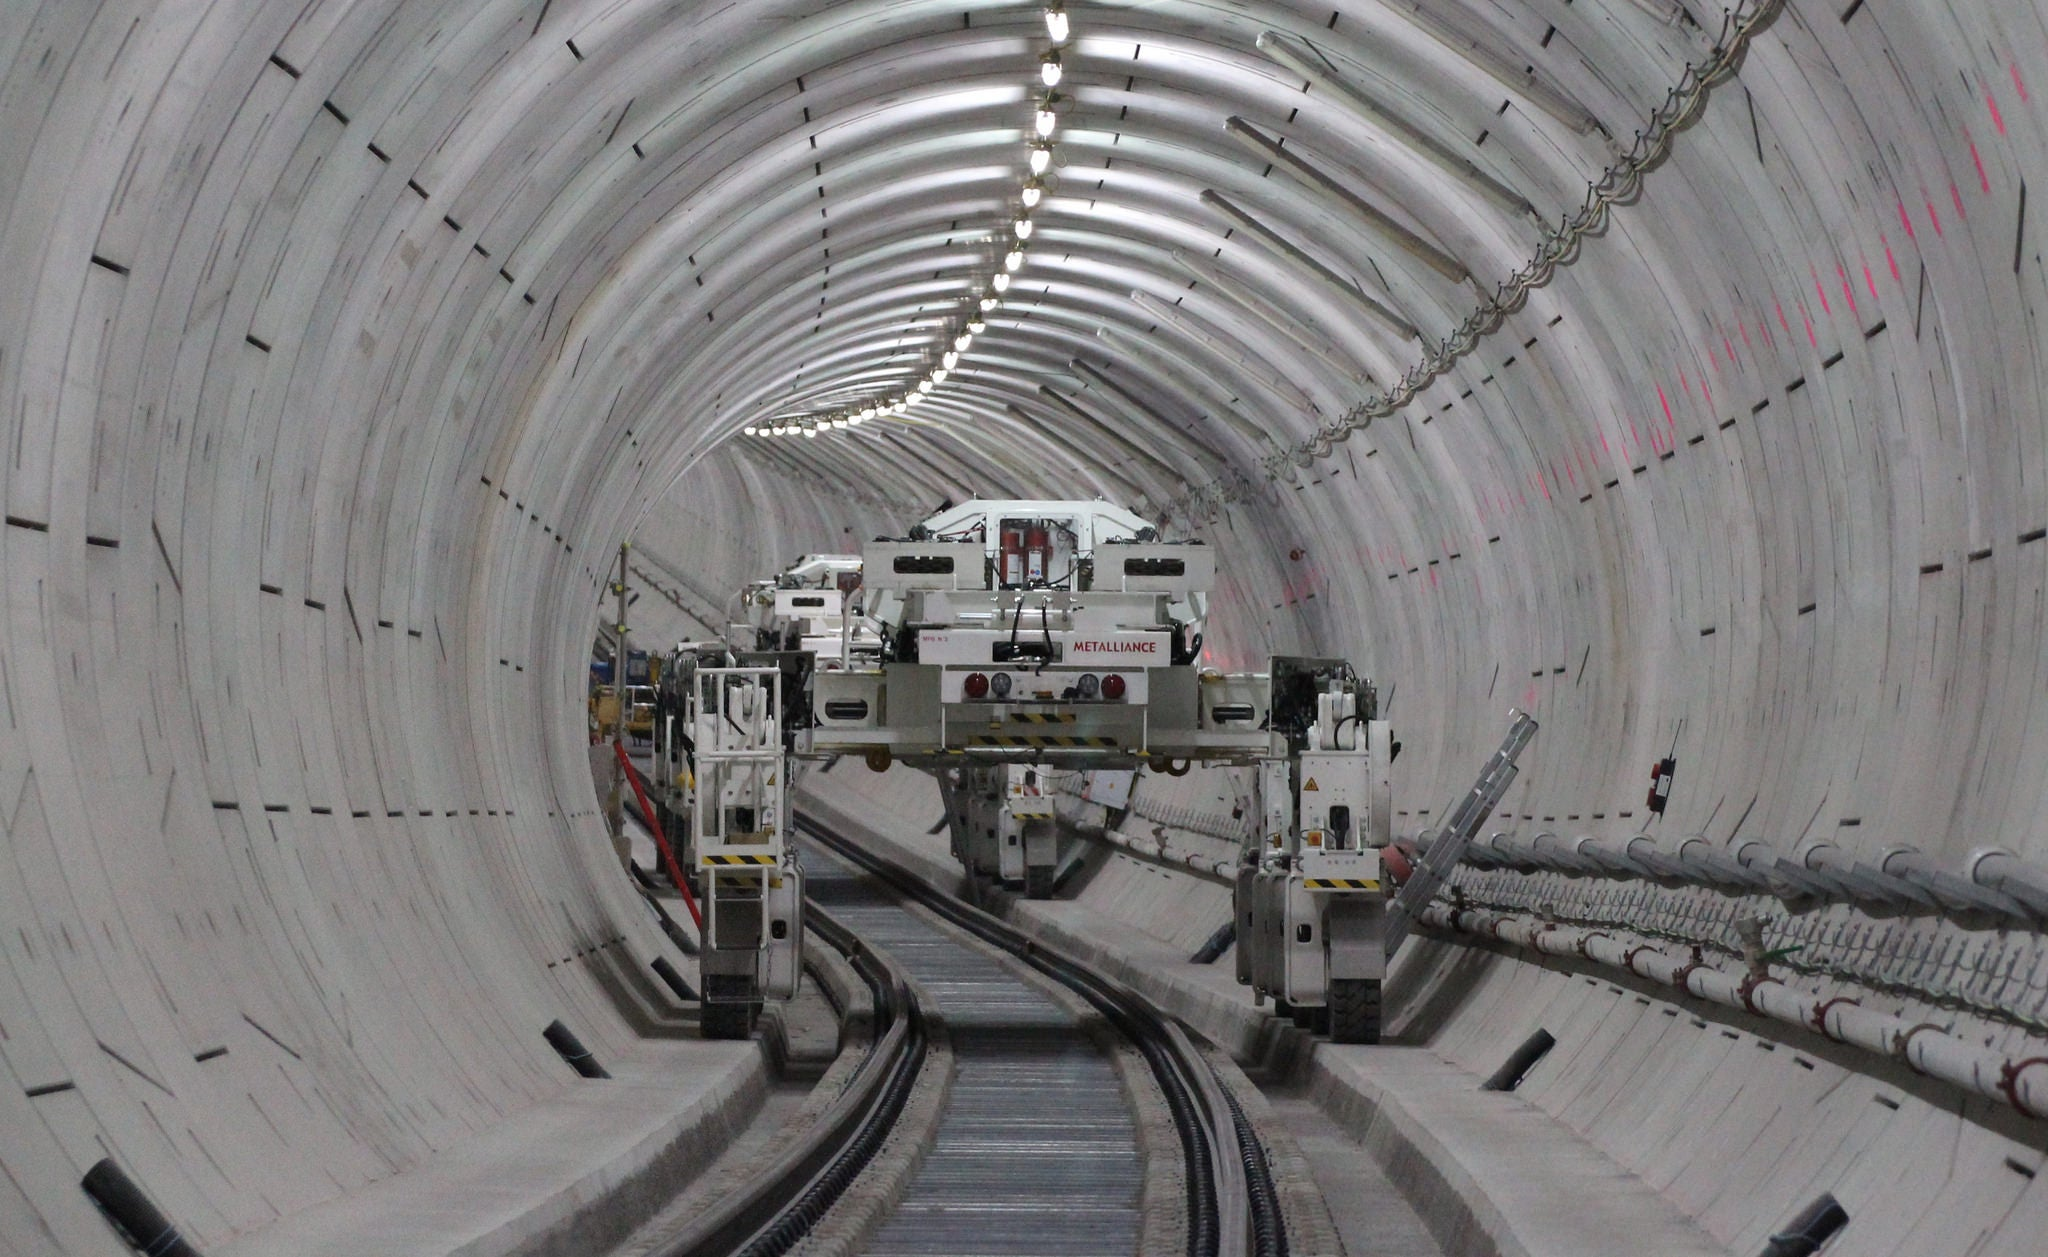 crossrail infrastructure london subway